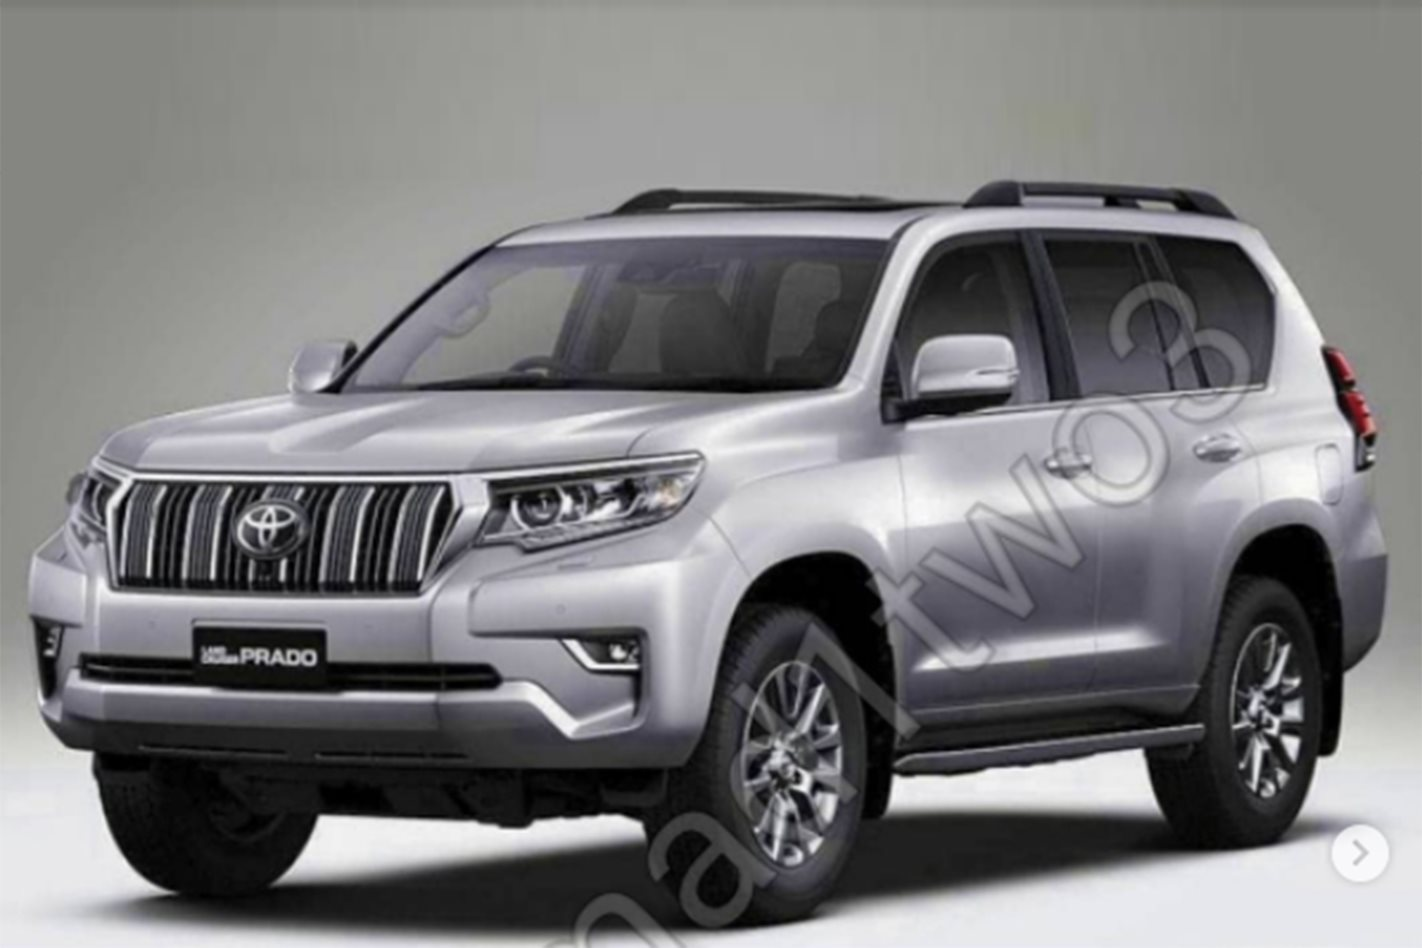 2018 toyota landcruiser prado facelift leaked. Black Bedroom Furniture Sets. Home Design Ideas